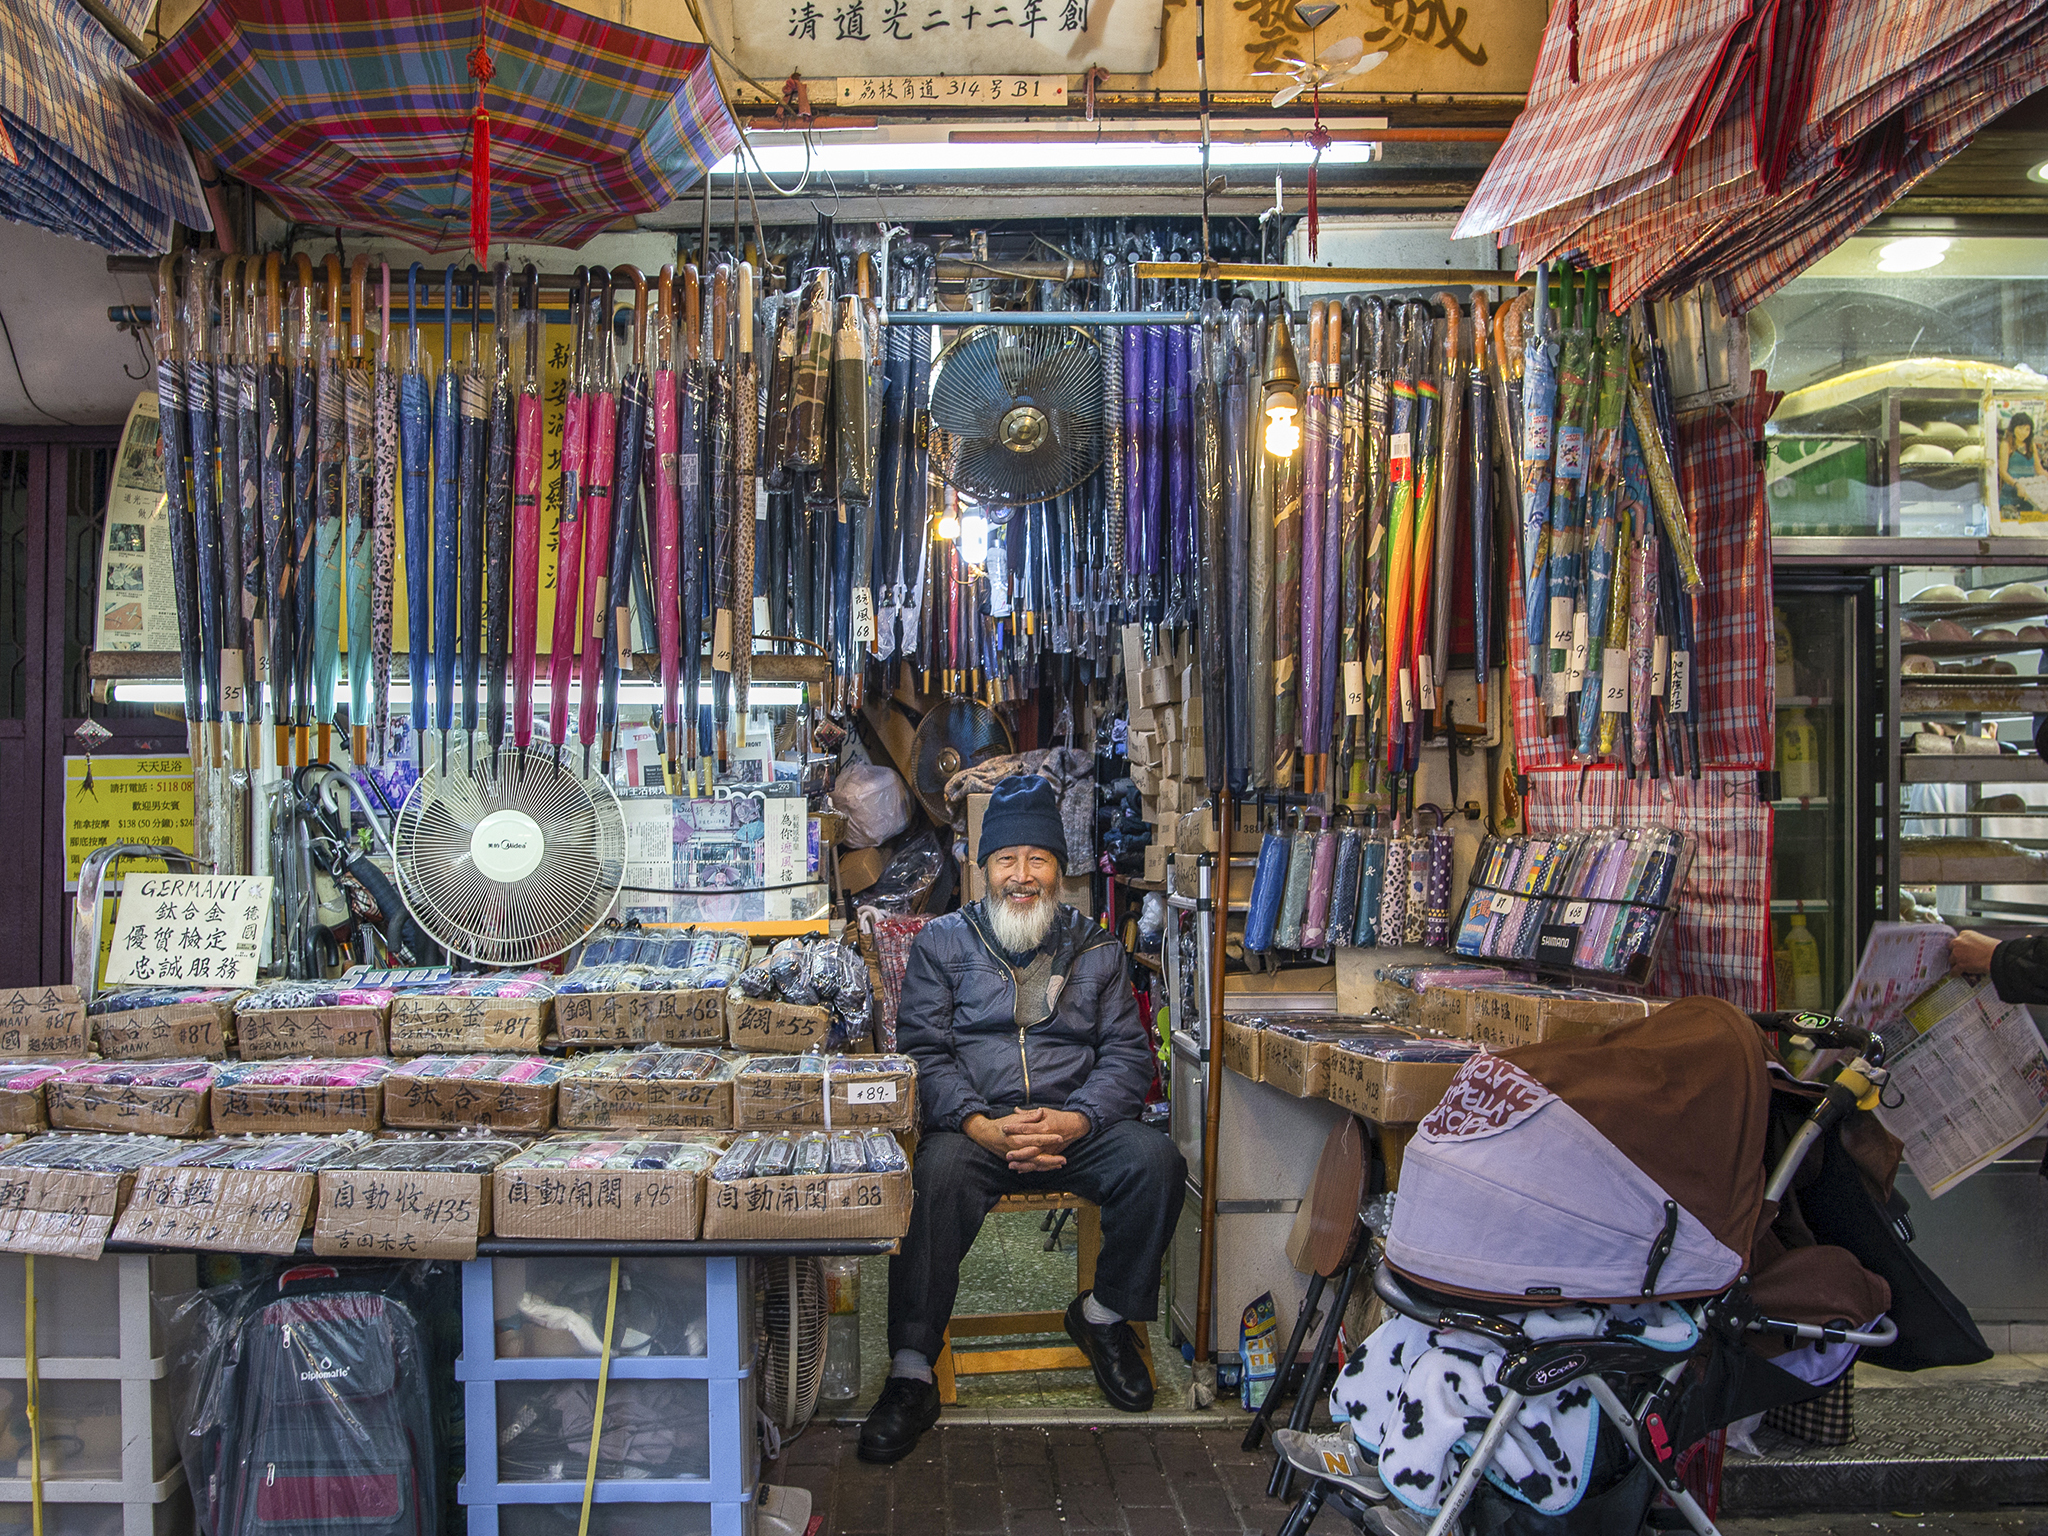 Dying trades and practices in Hong Kong and where to find them